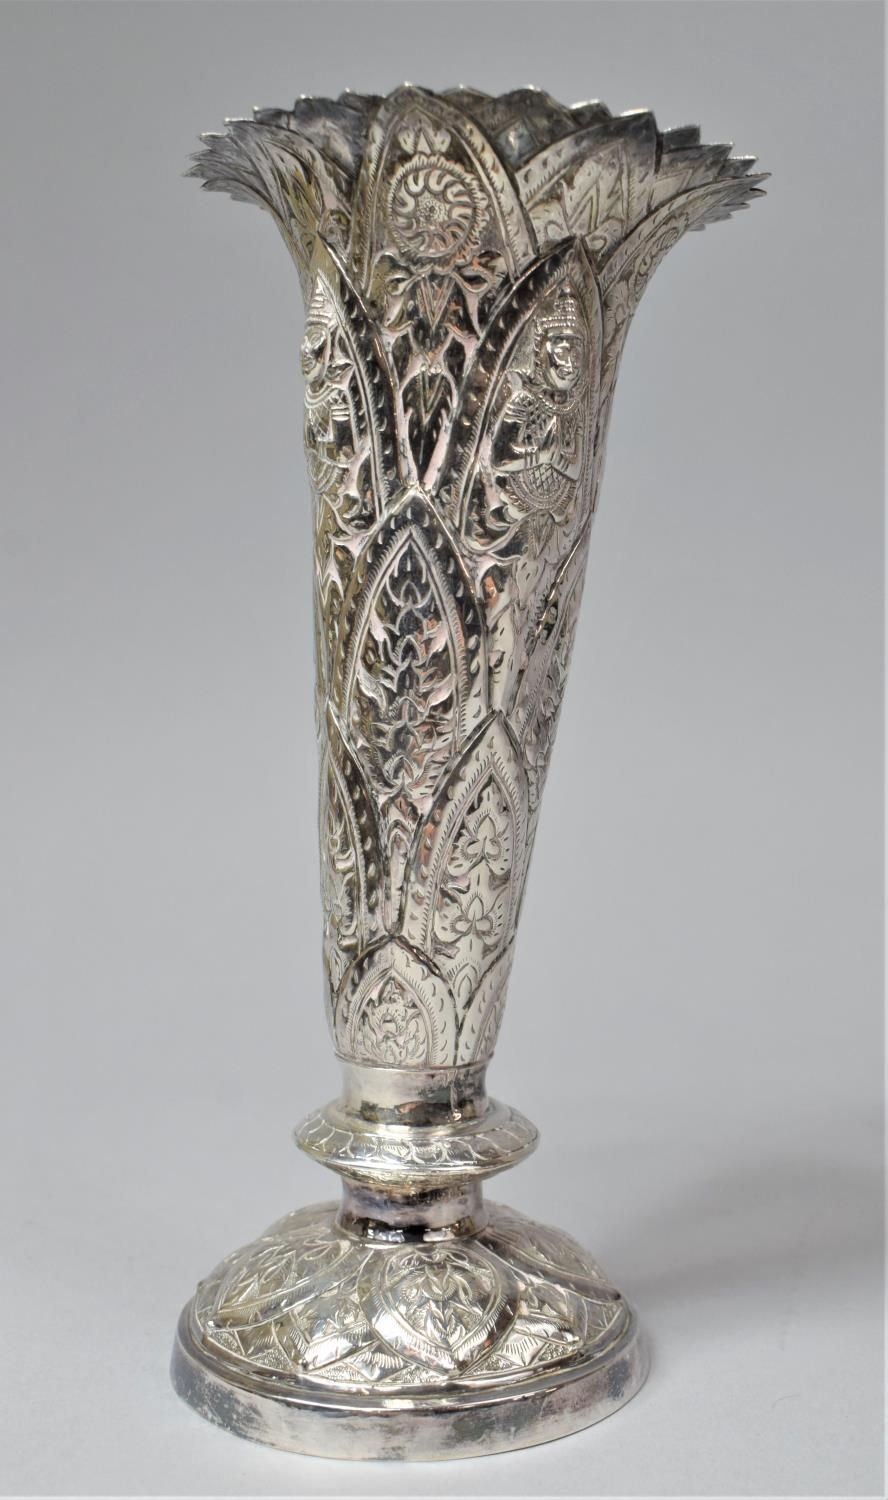 A Set of Three Indian Silver Trumpet Vases with Hand Hammered Repousse work, Depicting Namaste - Image 7 of 13